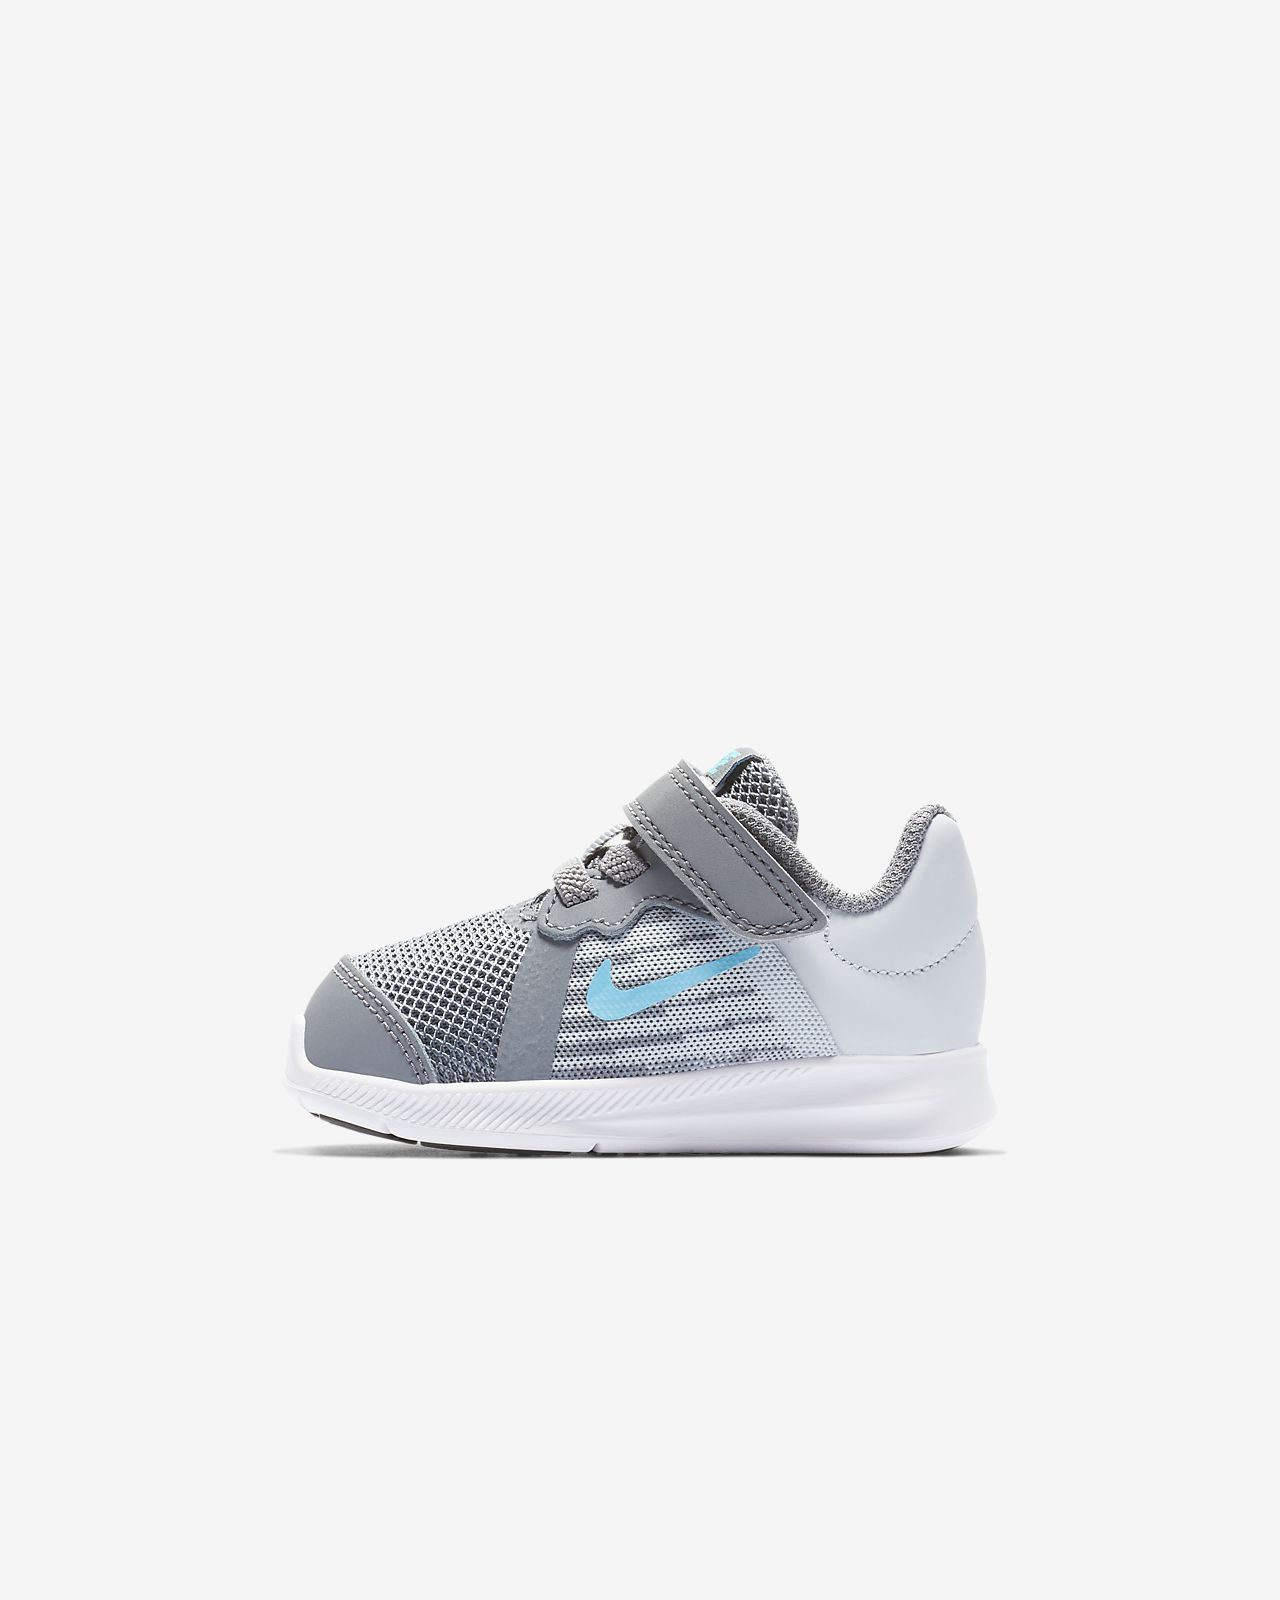 d0d17f22c79d Nike Downshifter 8 Baby   Toddler Shoe. Nike.com GB